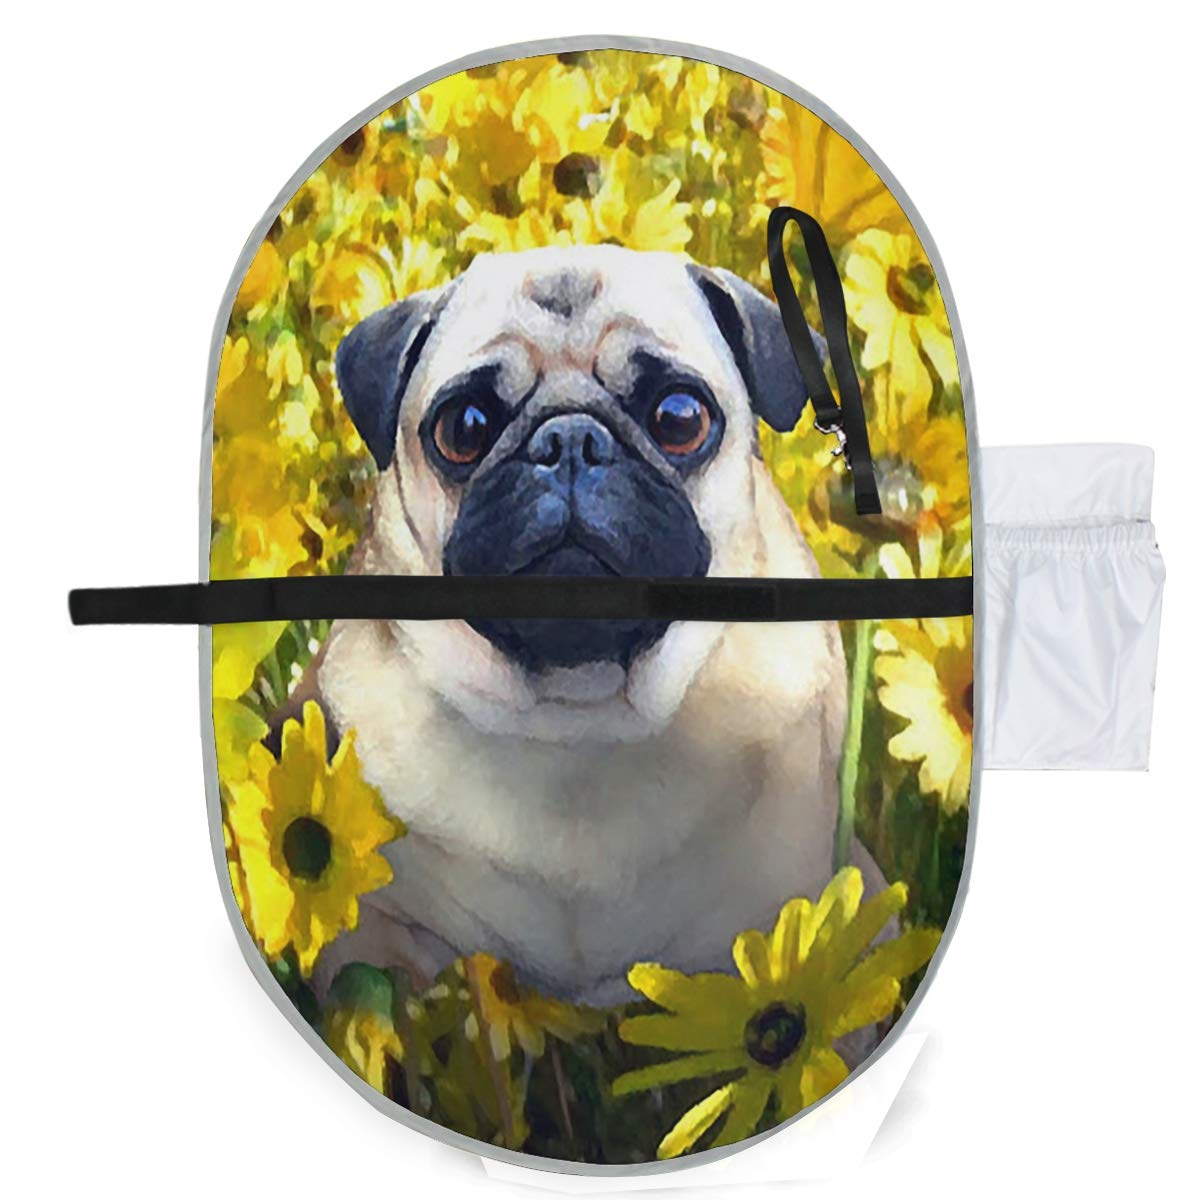 SLHFPX Changing Pad Pug Watercolor Baby Diaper Incontinence Pad Mat Hot Toddler Children Baby Mattress Sheet for Any Places for Home Travel Bed Play Stroller Crib Car